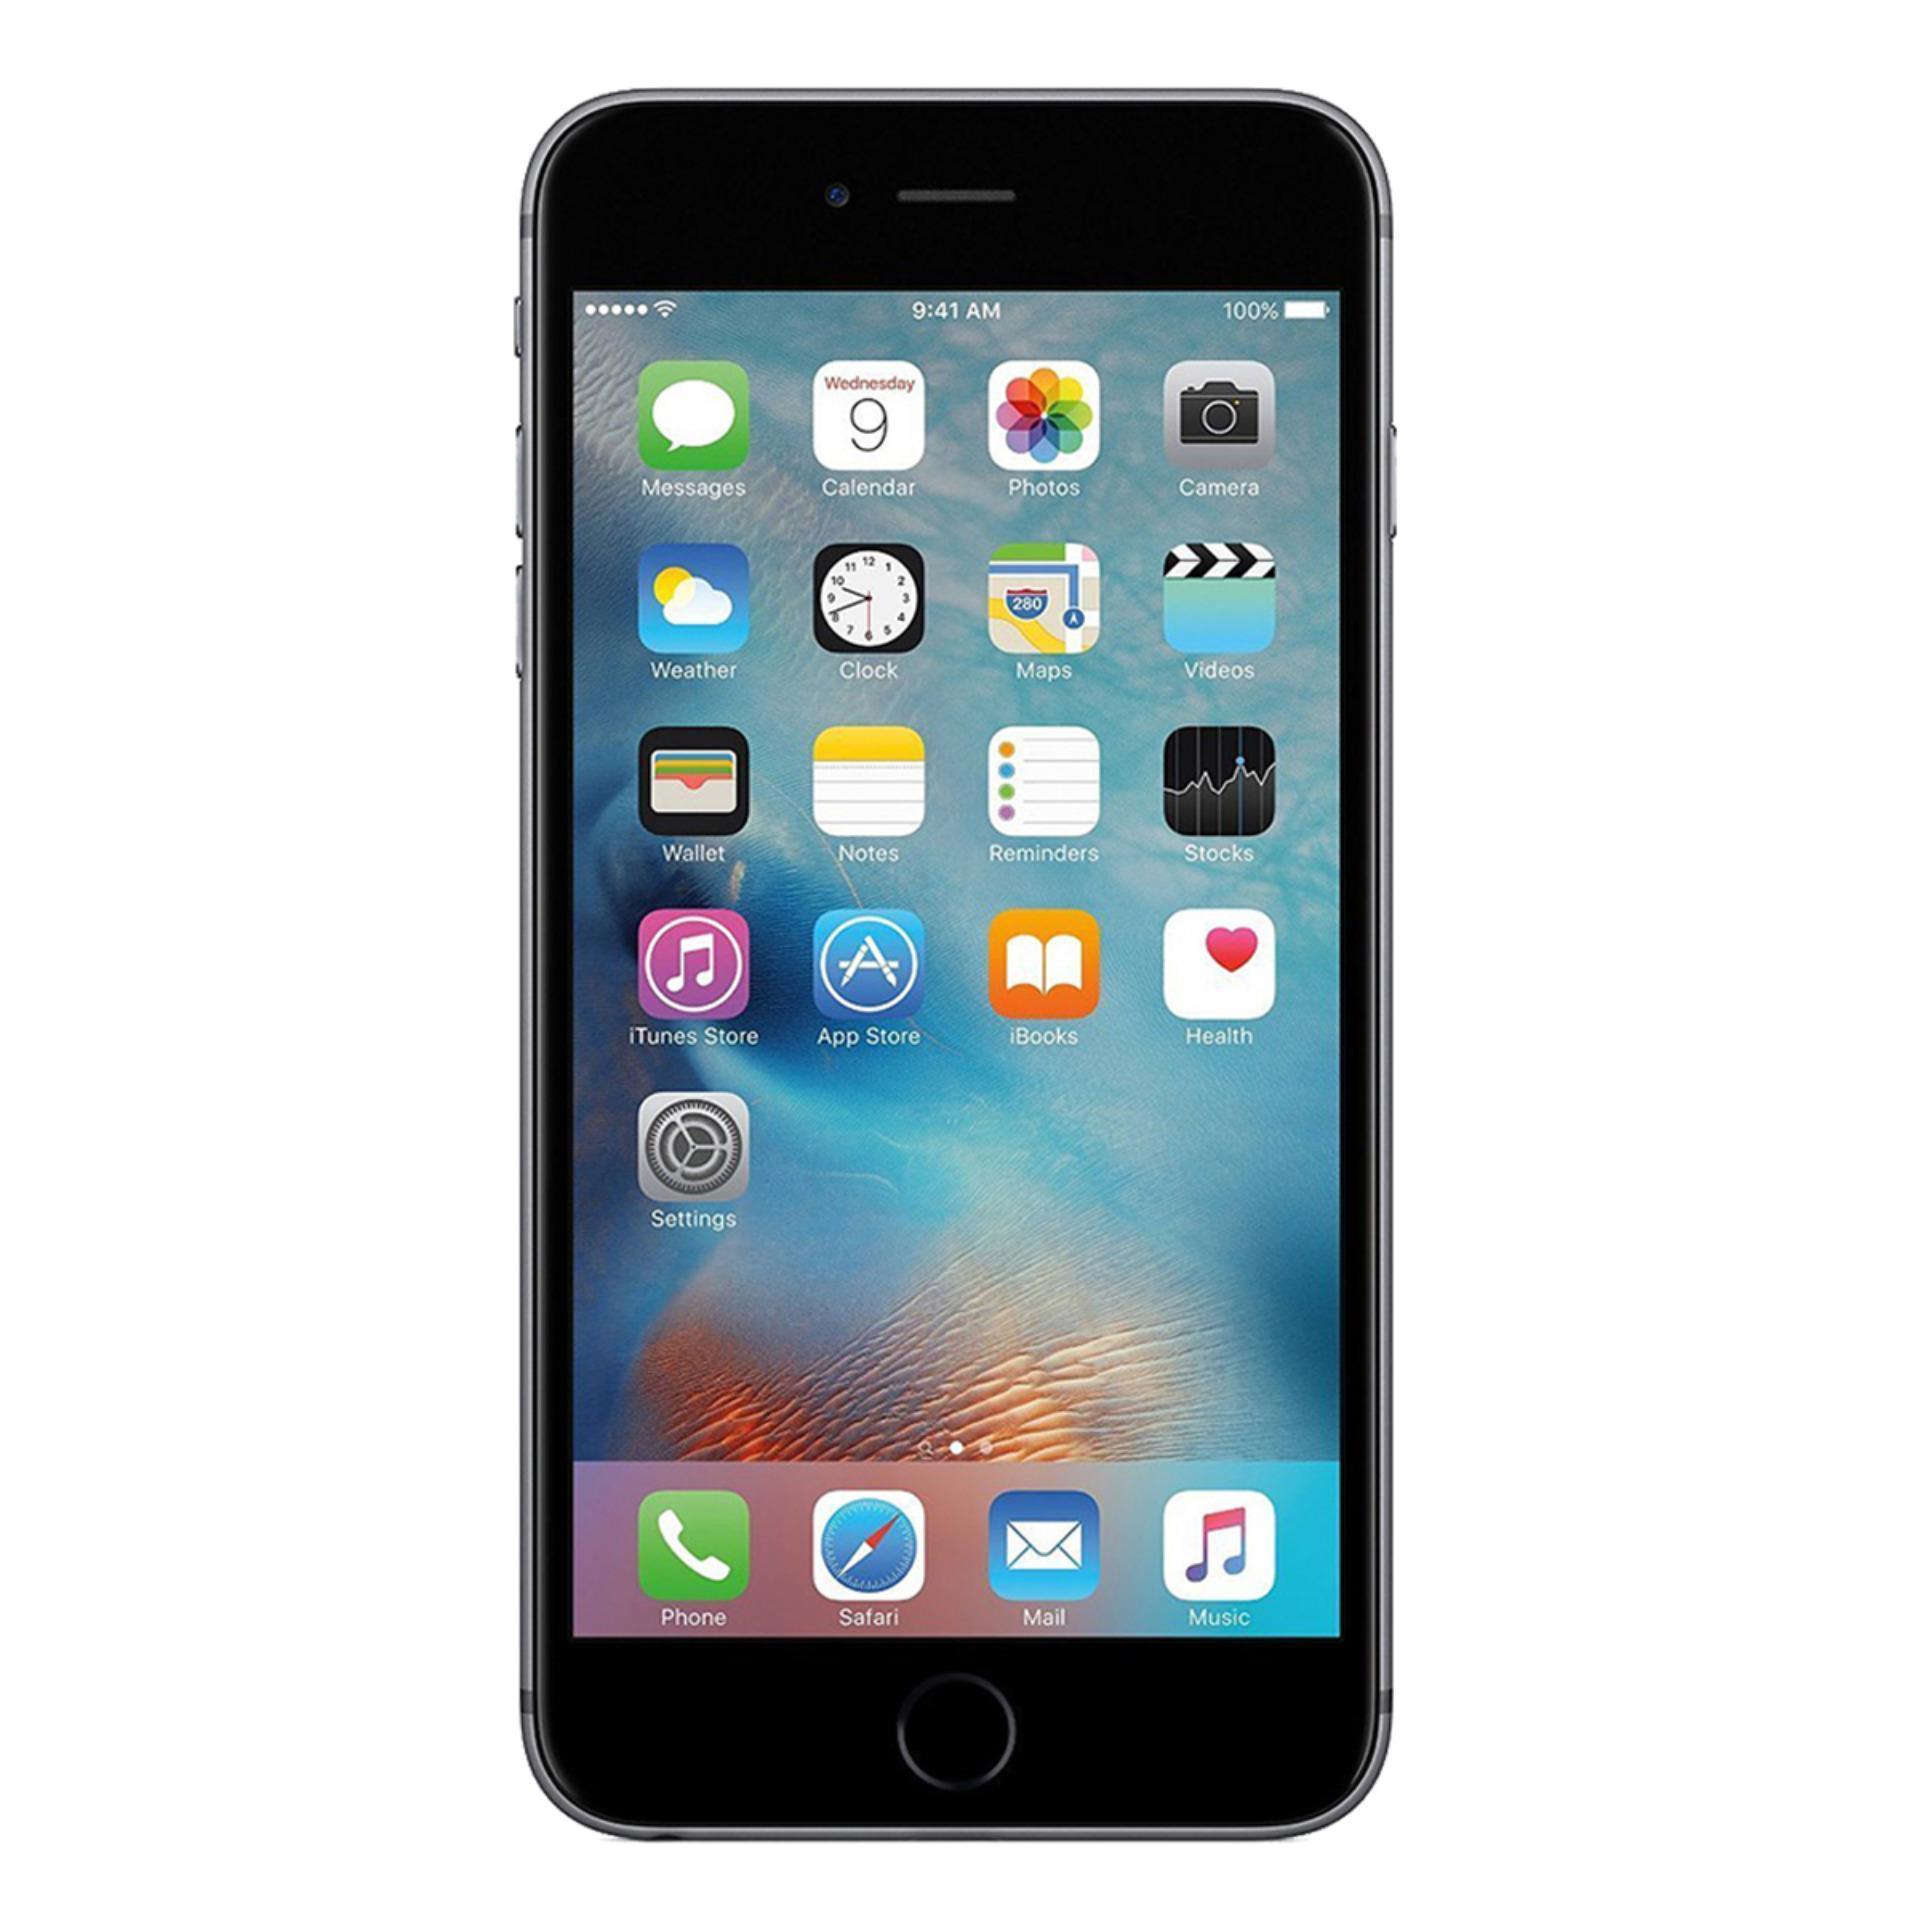 387bc1add5bcaf iPhone Price In Bangladesh - Apple Mobile Phone Online - Daraz.com.bd